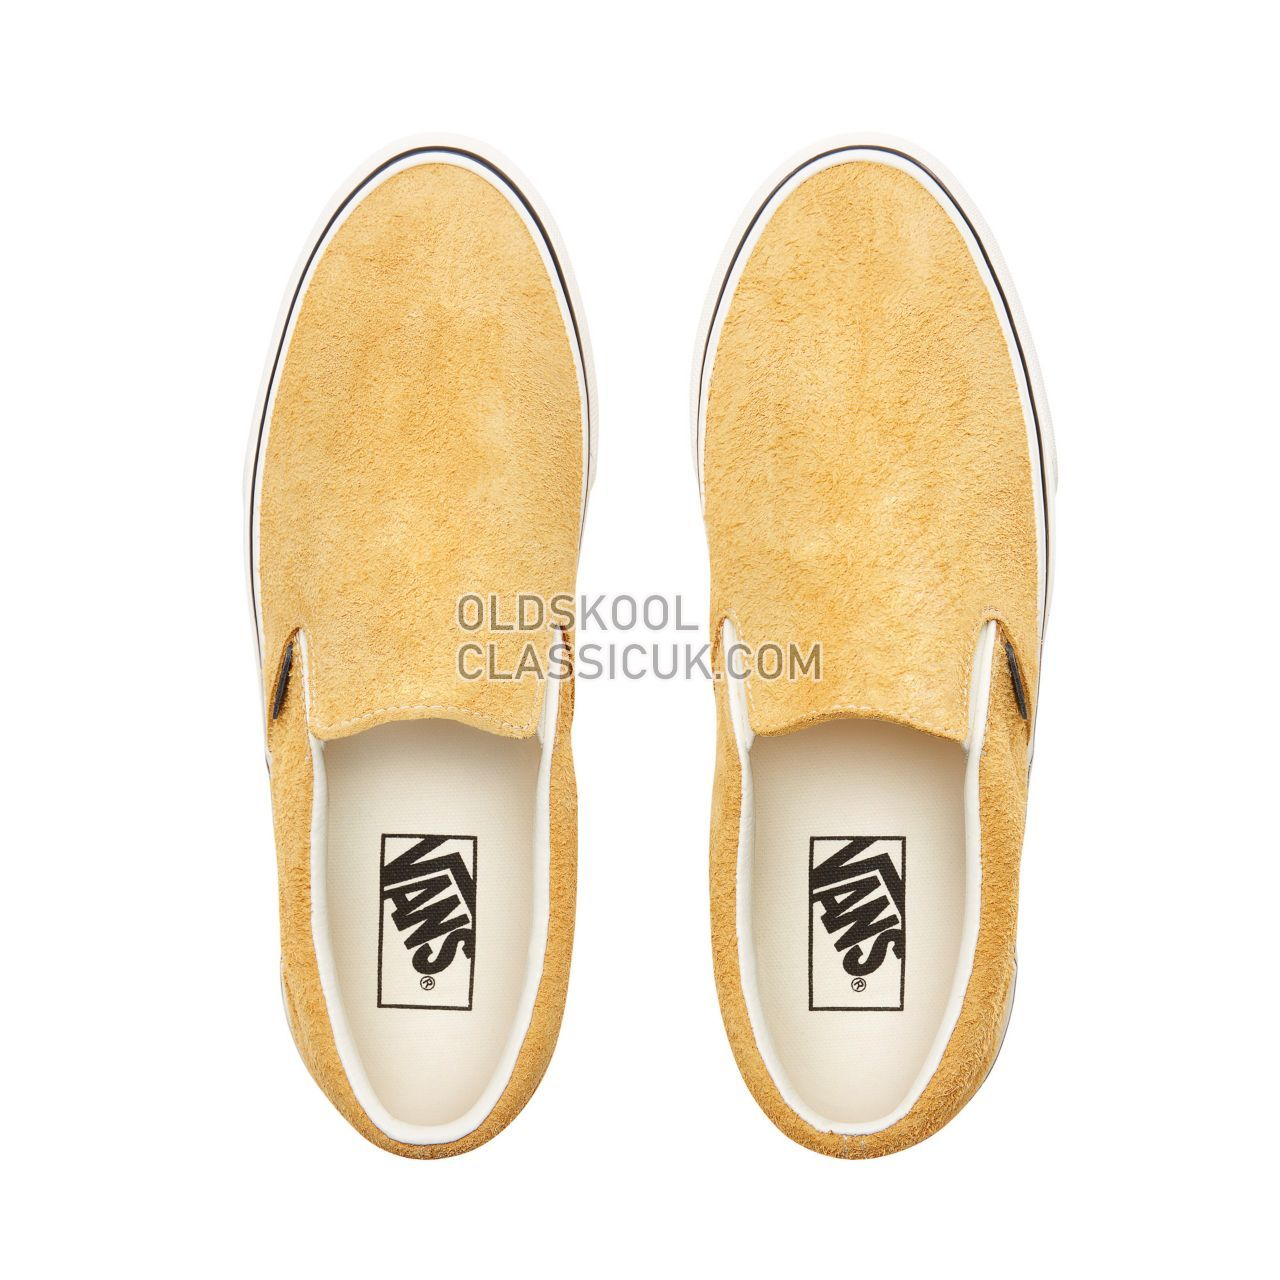 Vans Hairy Suede Classic Slip-On Sneakers Mens (Hairy Suede) Sunflower/Snow White VN0A38F7ULR Shoes